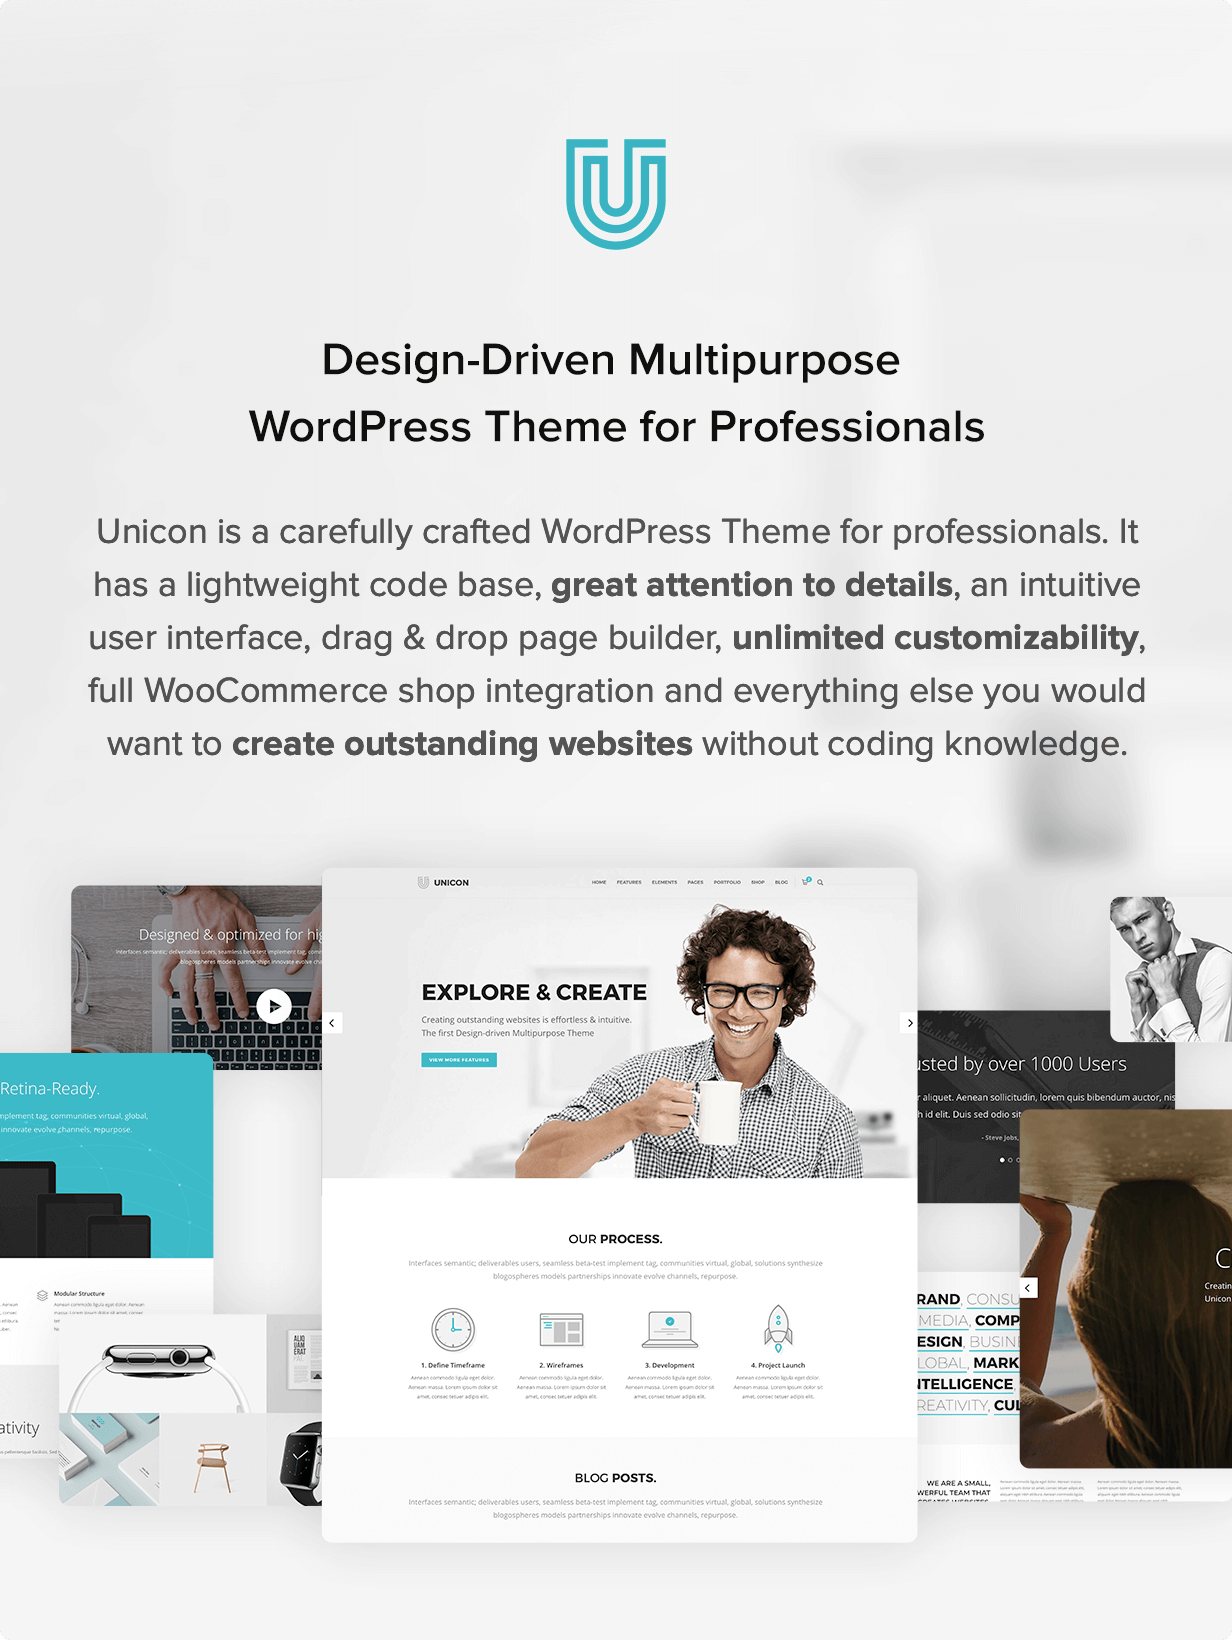 unicon intro3 - Unicon | Design-Driven Multipurpose Theme